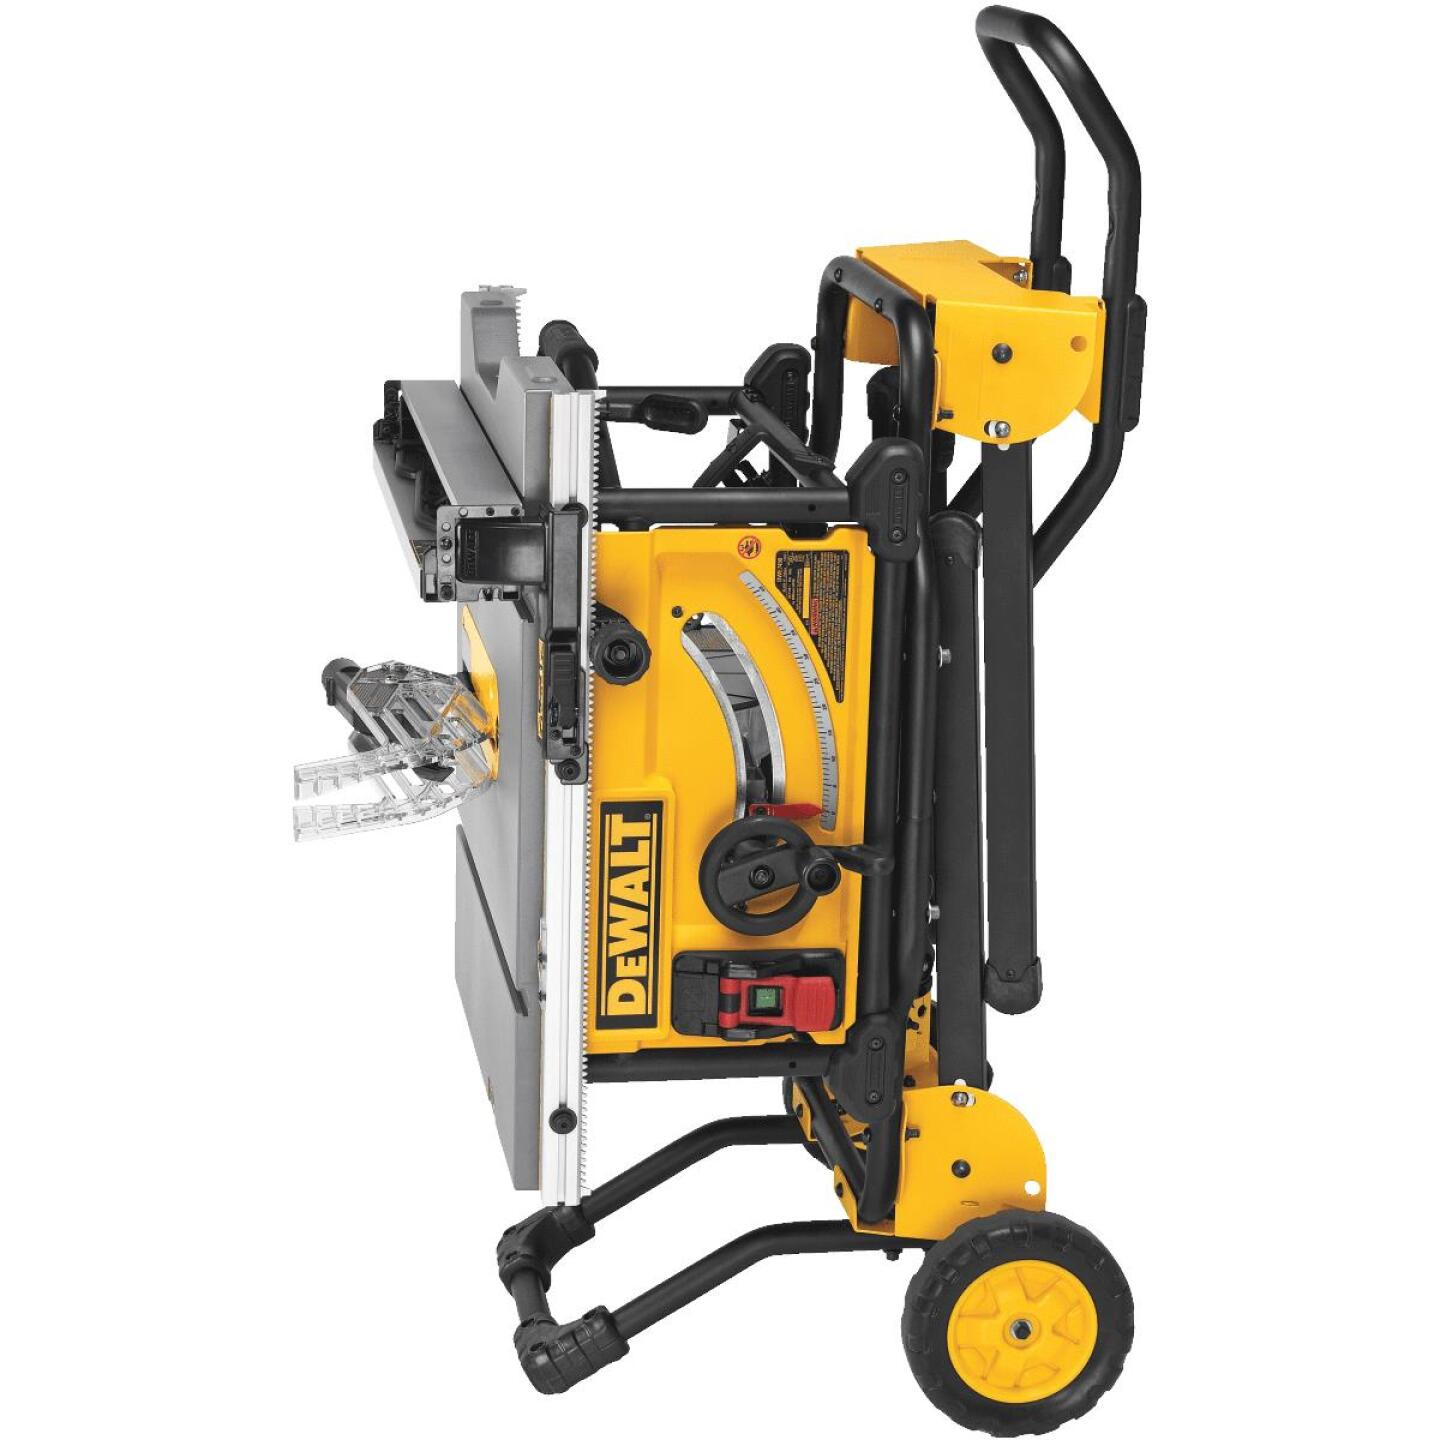 DeWalt 15A 10 In. Compact Job Site Table Saw with Rolling Stand Image 2